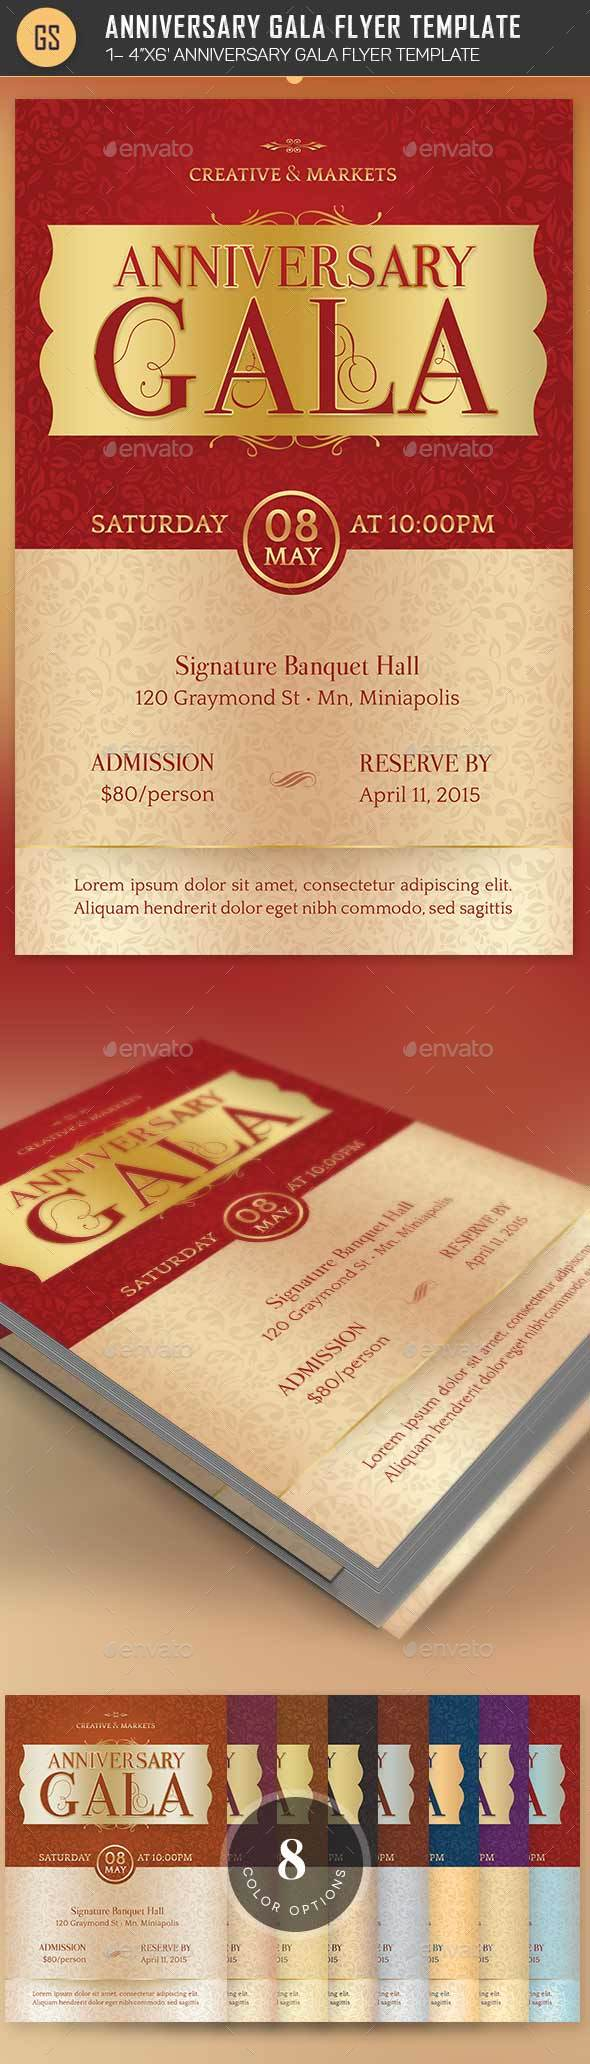 Anniversary Gala Flyer Template - Church Flyers